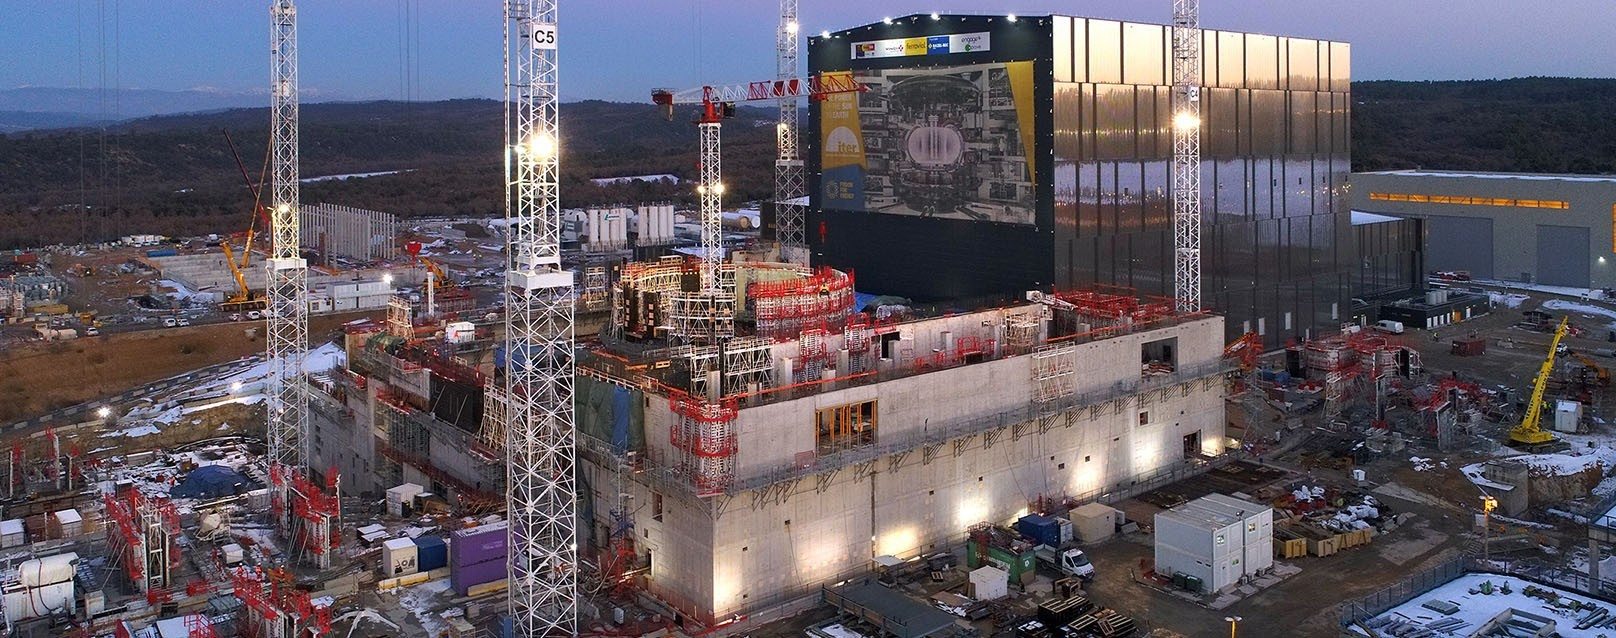 ITER Project Complex Under Construction